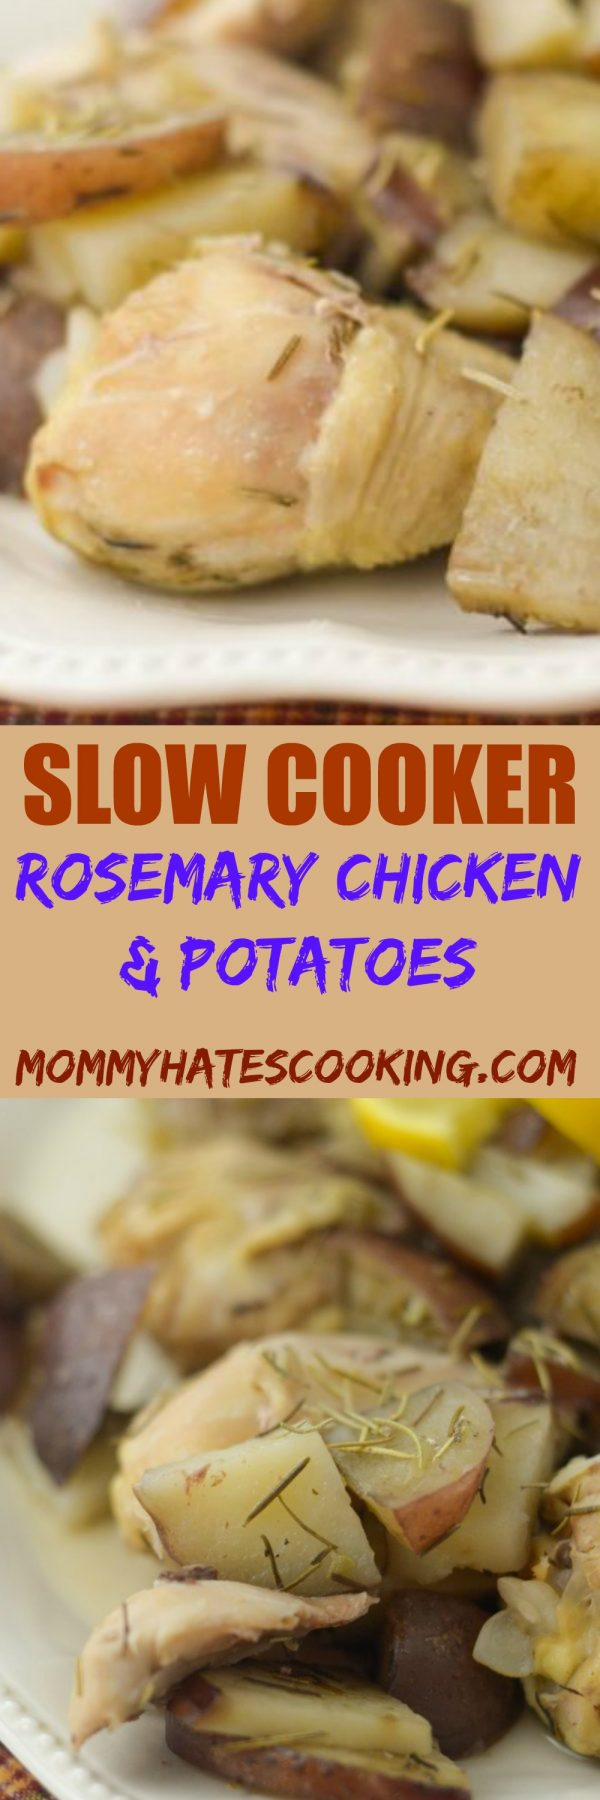 SLOW COOKER ROSEMARY CHICKEN & POTATOES - MOMMY HATES COOKING